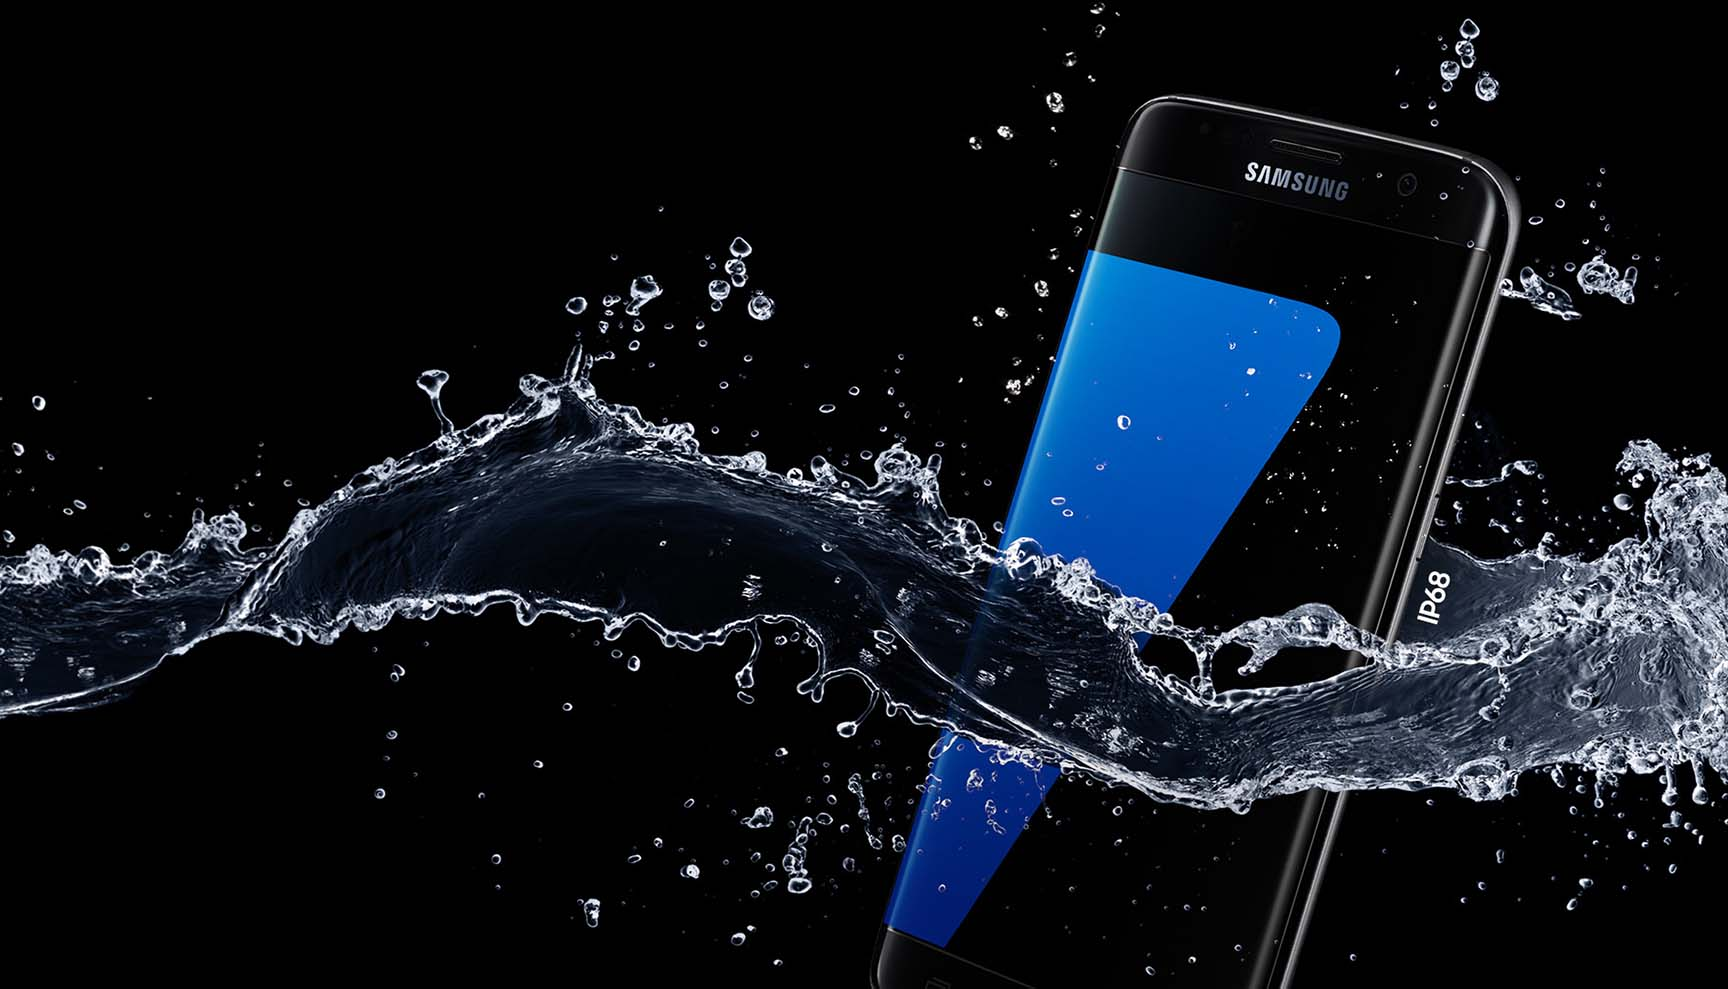 Samsung Galaxy S7 Edge Stunning Images HD 1080p 1728x989